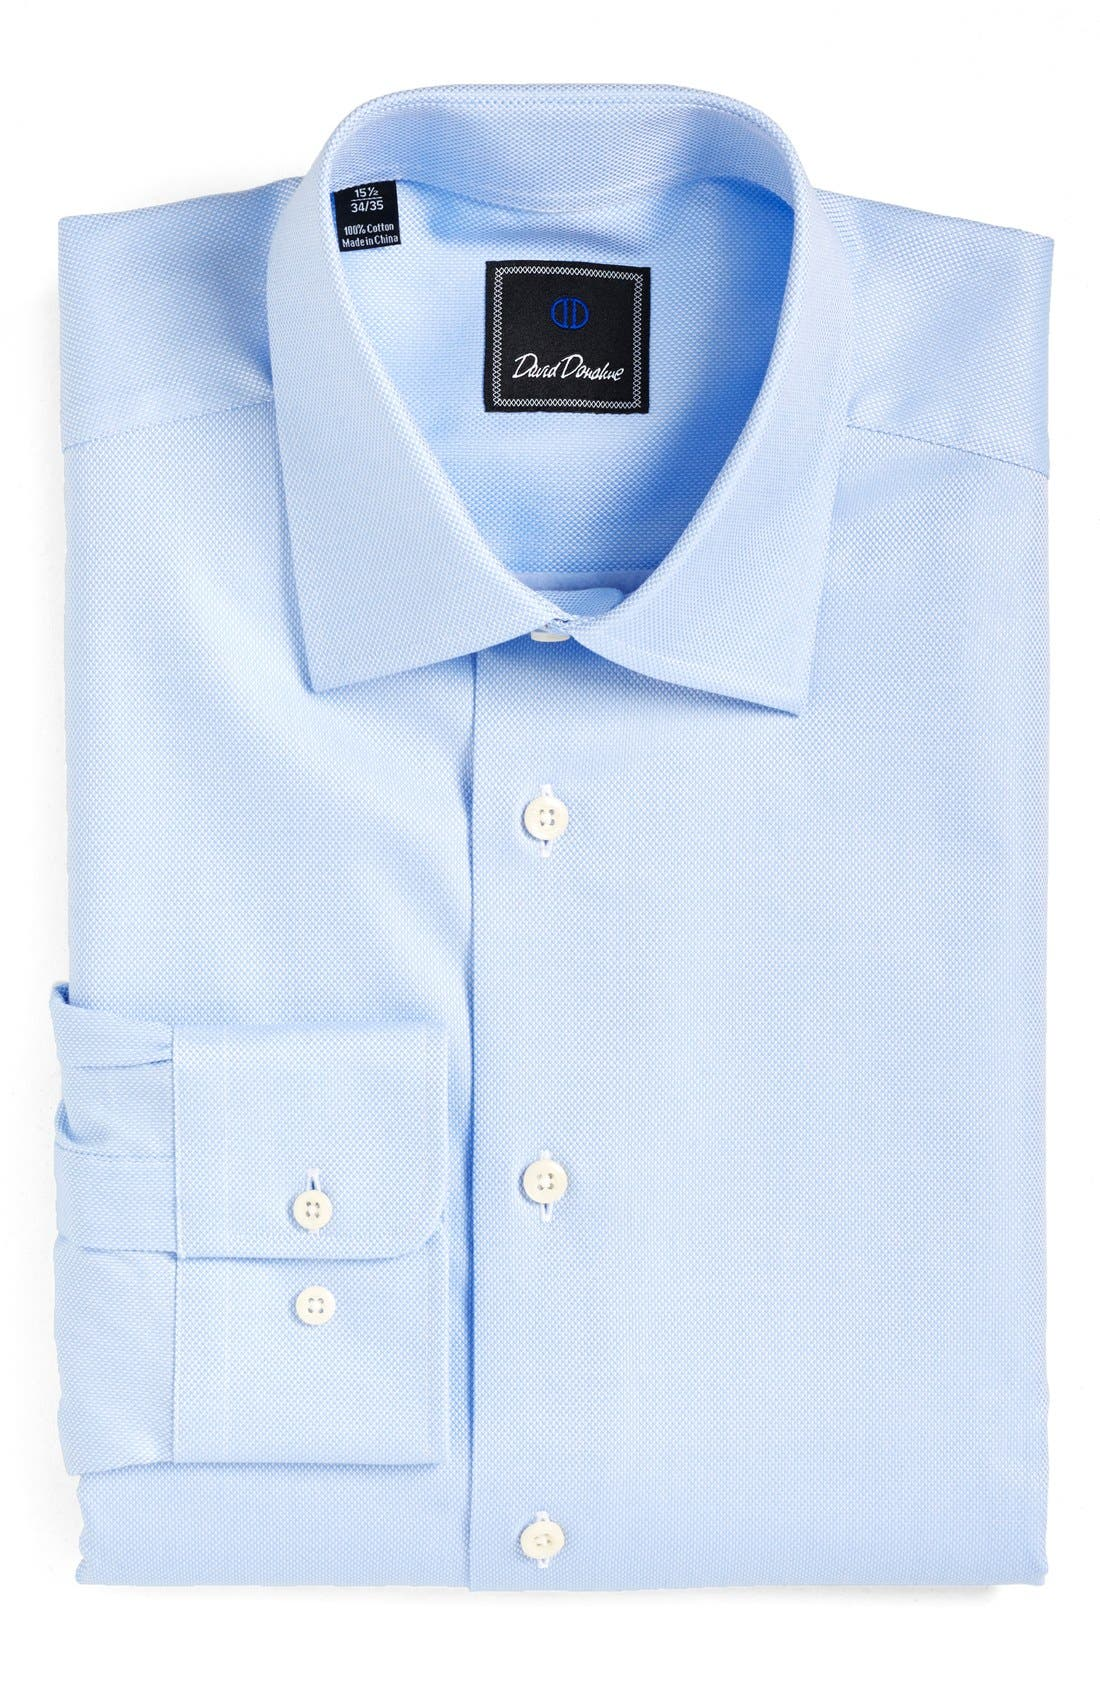 Main Image - David Donahue Regular Fit Oxford Dress Shirt